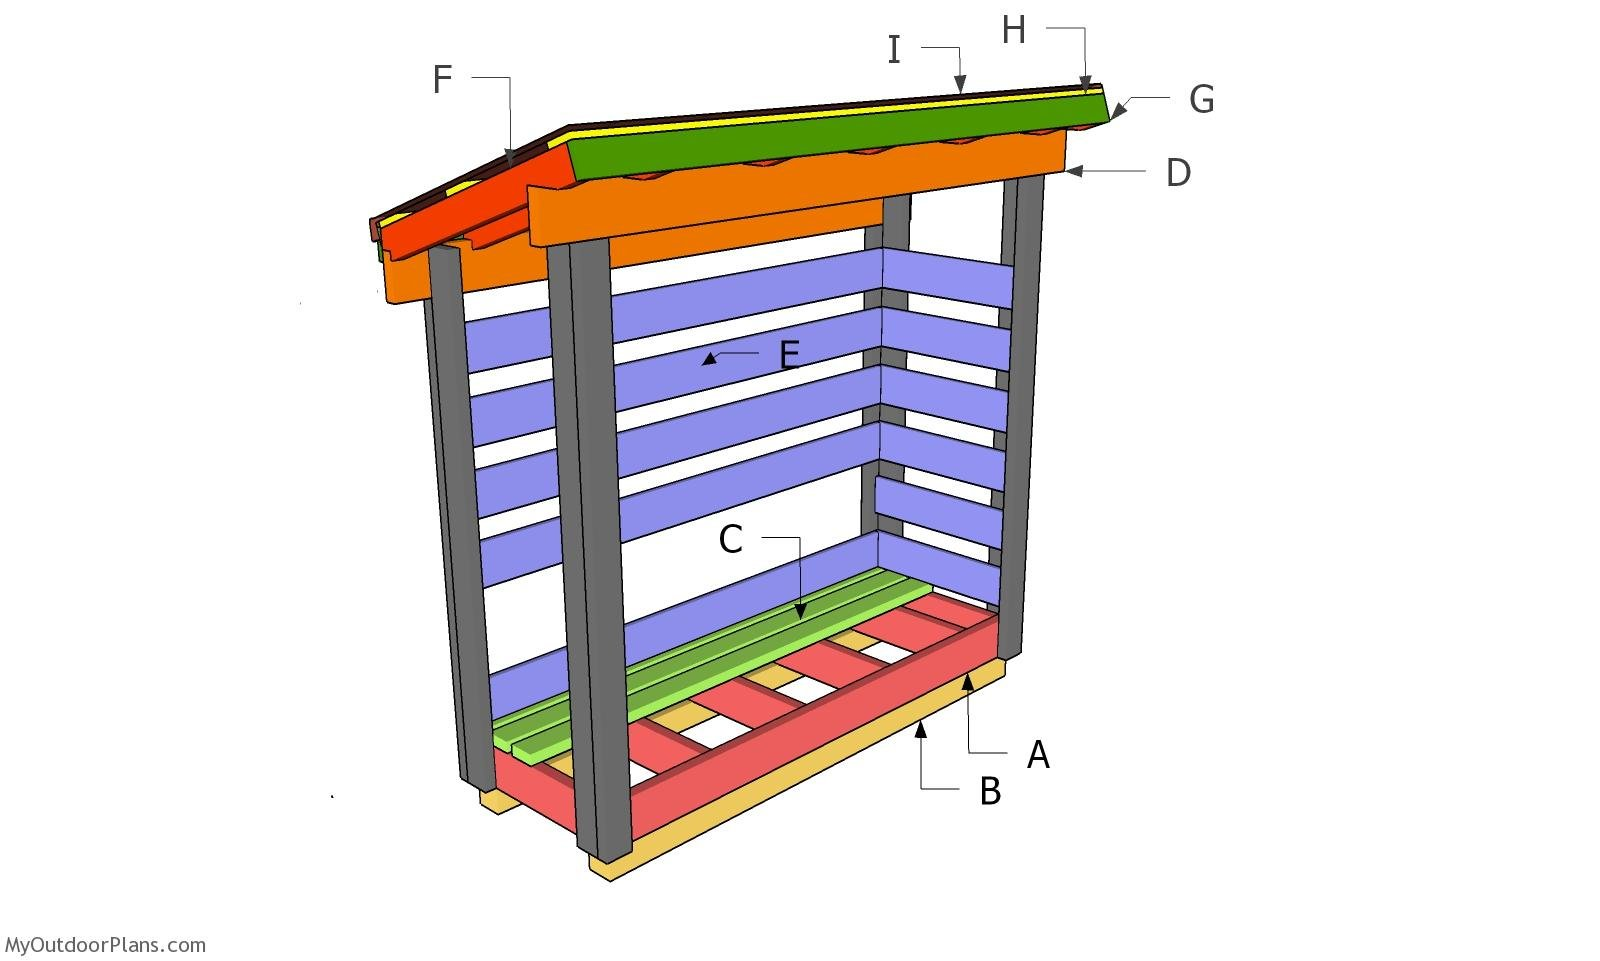 2x6 Firewood Shed Plans - Part 2